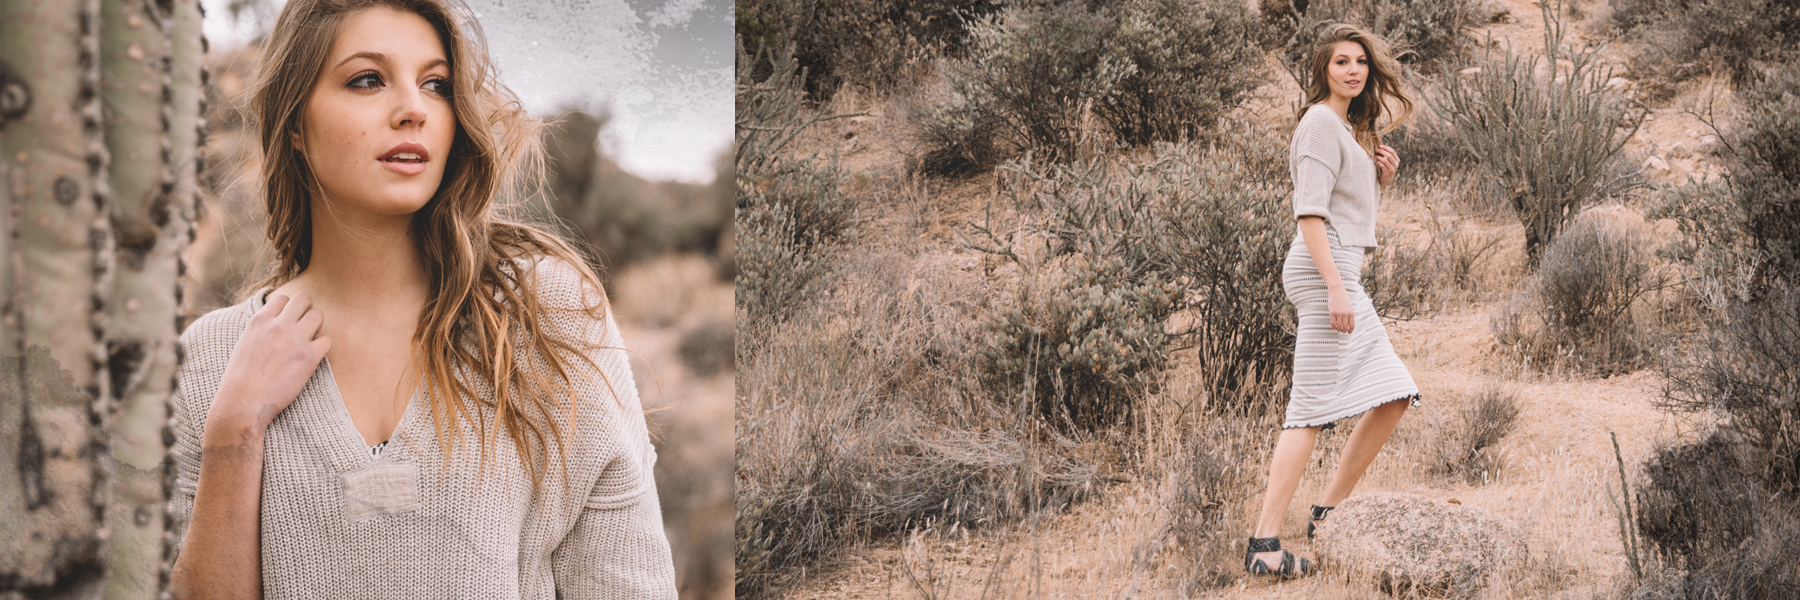 Two different views of model wearing Gimmicks split neck sweater and pencil skirt, walking in desert.